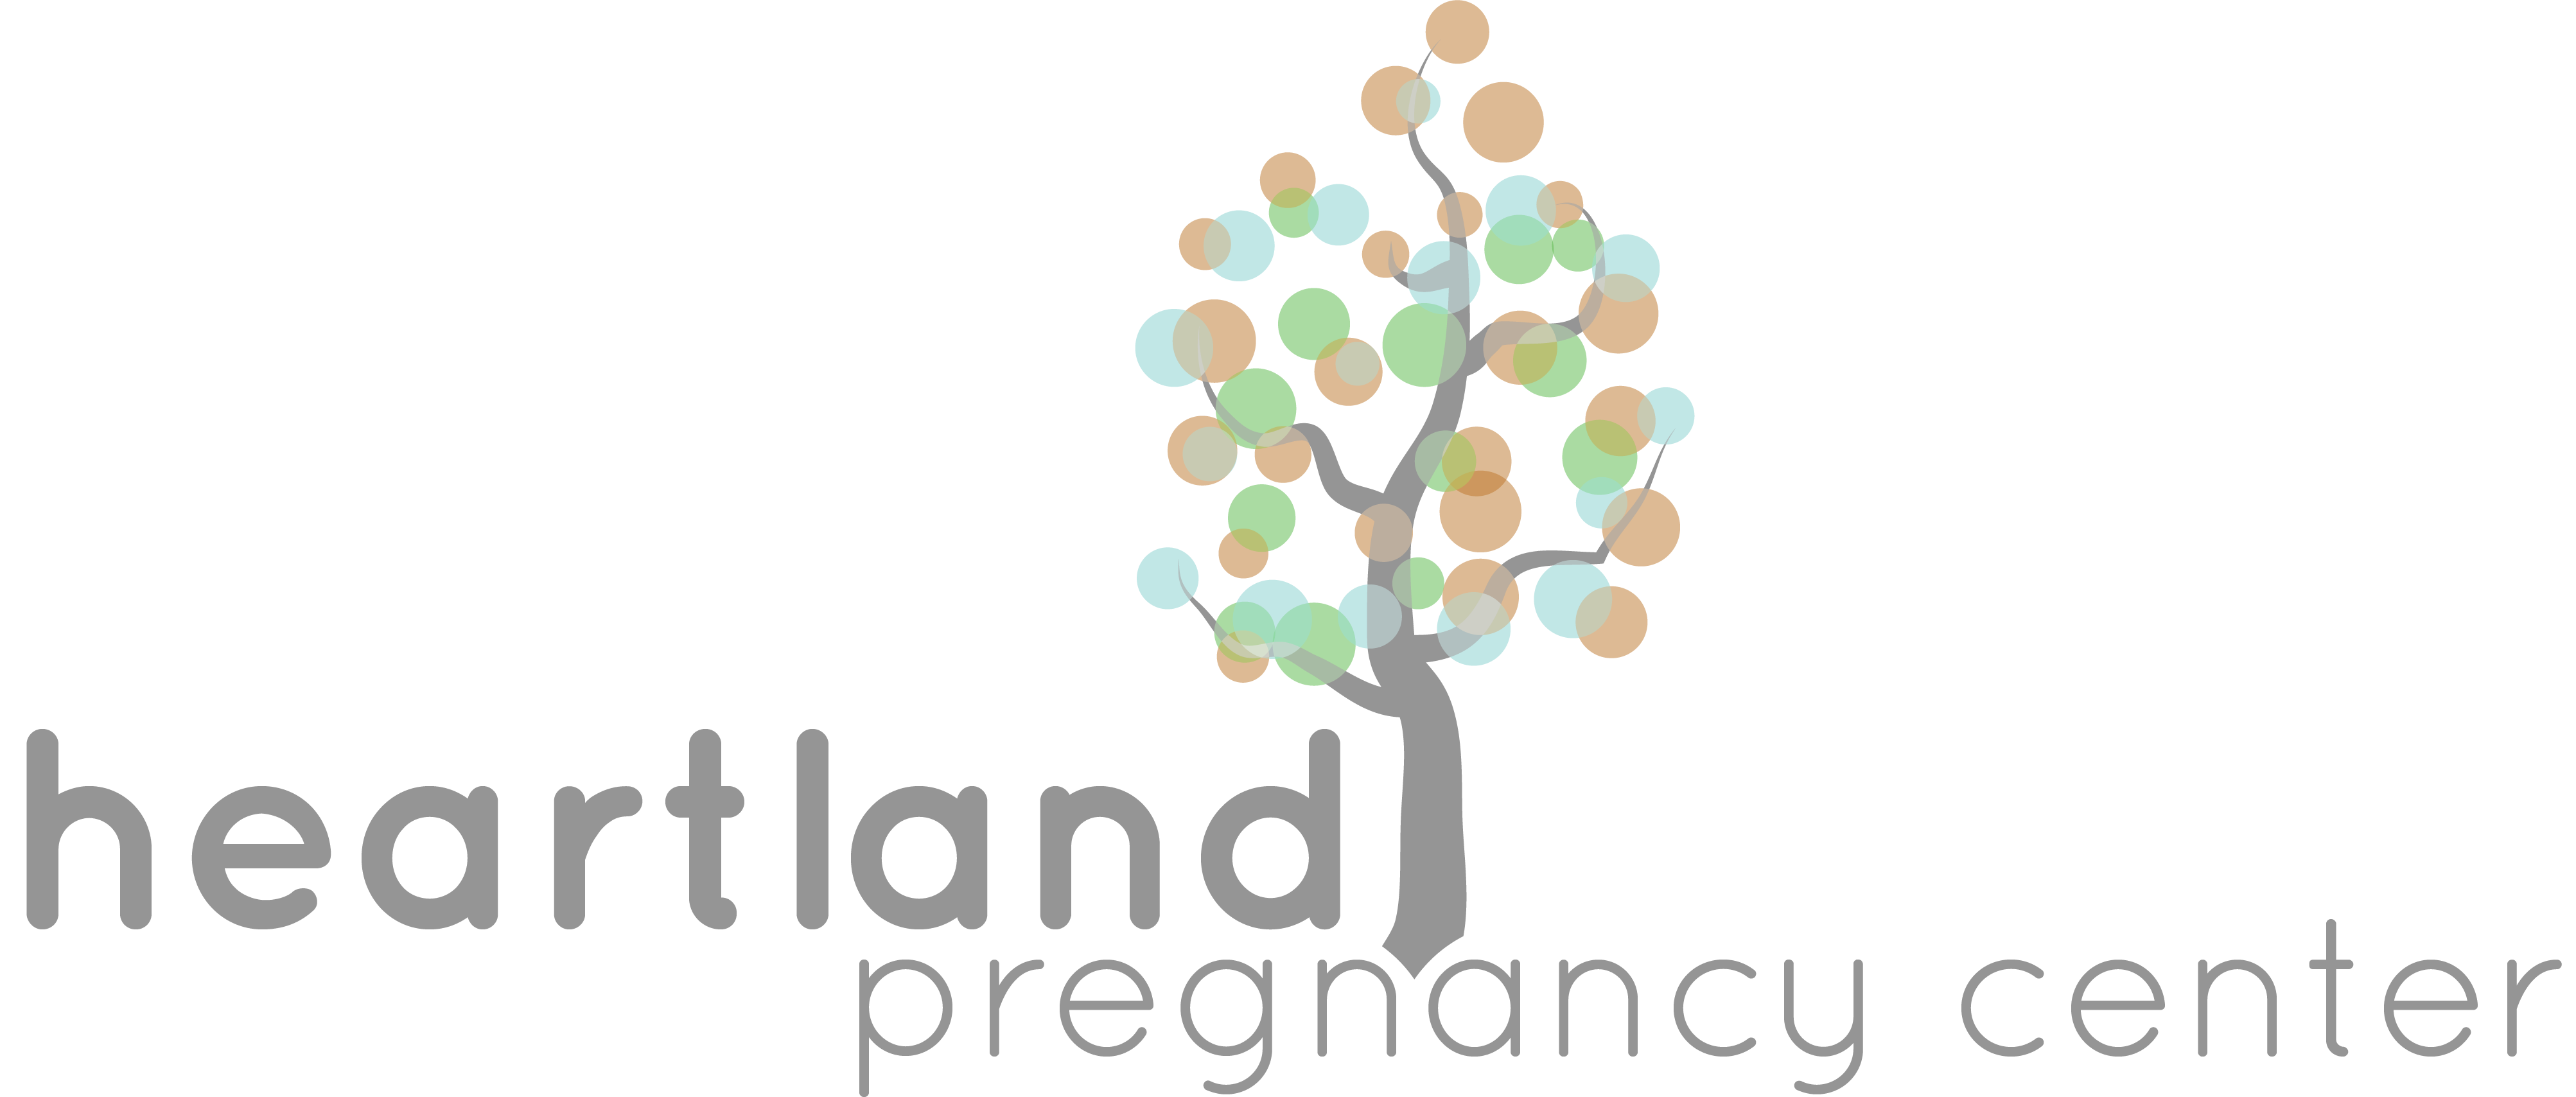 Heartland Pregnancy Center - Ottumwa, IA - Abortion Information